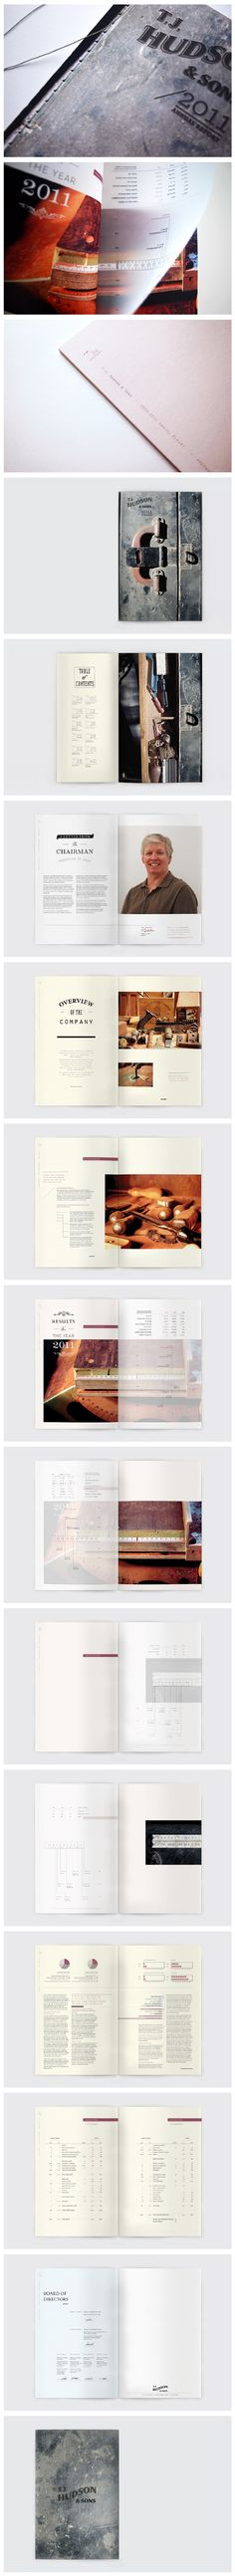 HUDSON & SONS - creative uses of velum over photos to display information. Graphic Design Print, Graphic Design Layouts, Graphic Design Typography, Layout Design, Brochure Layout, Brochure Design, Branding Design, Design Editorial, Editorial Layout